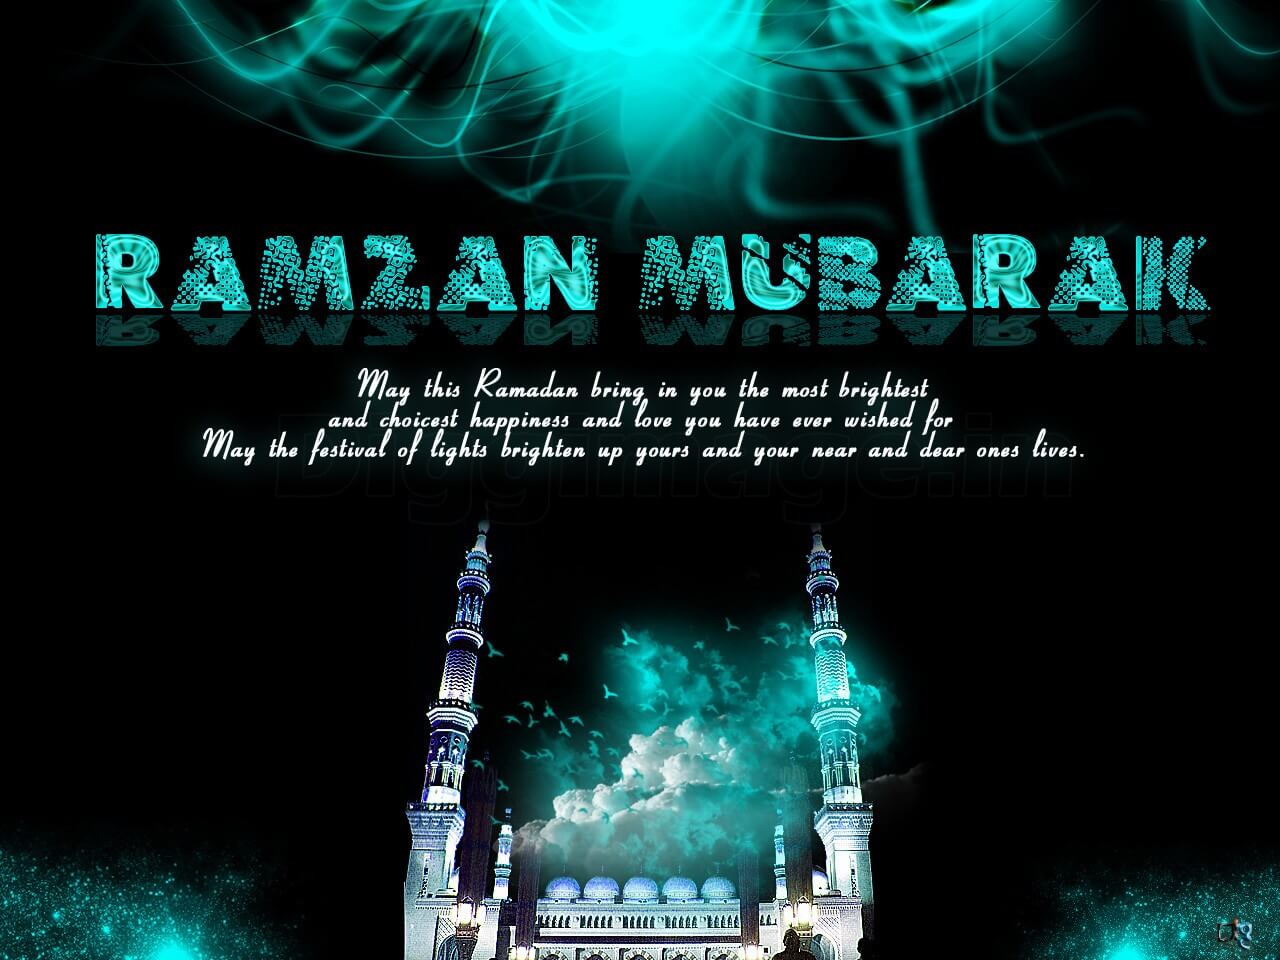 ramzan mubarak greetings wallpaper